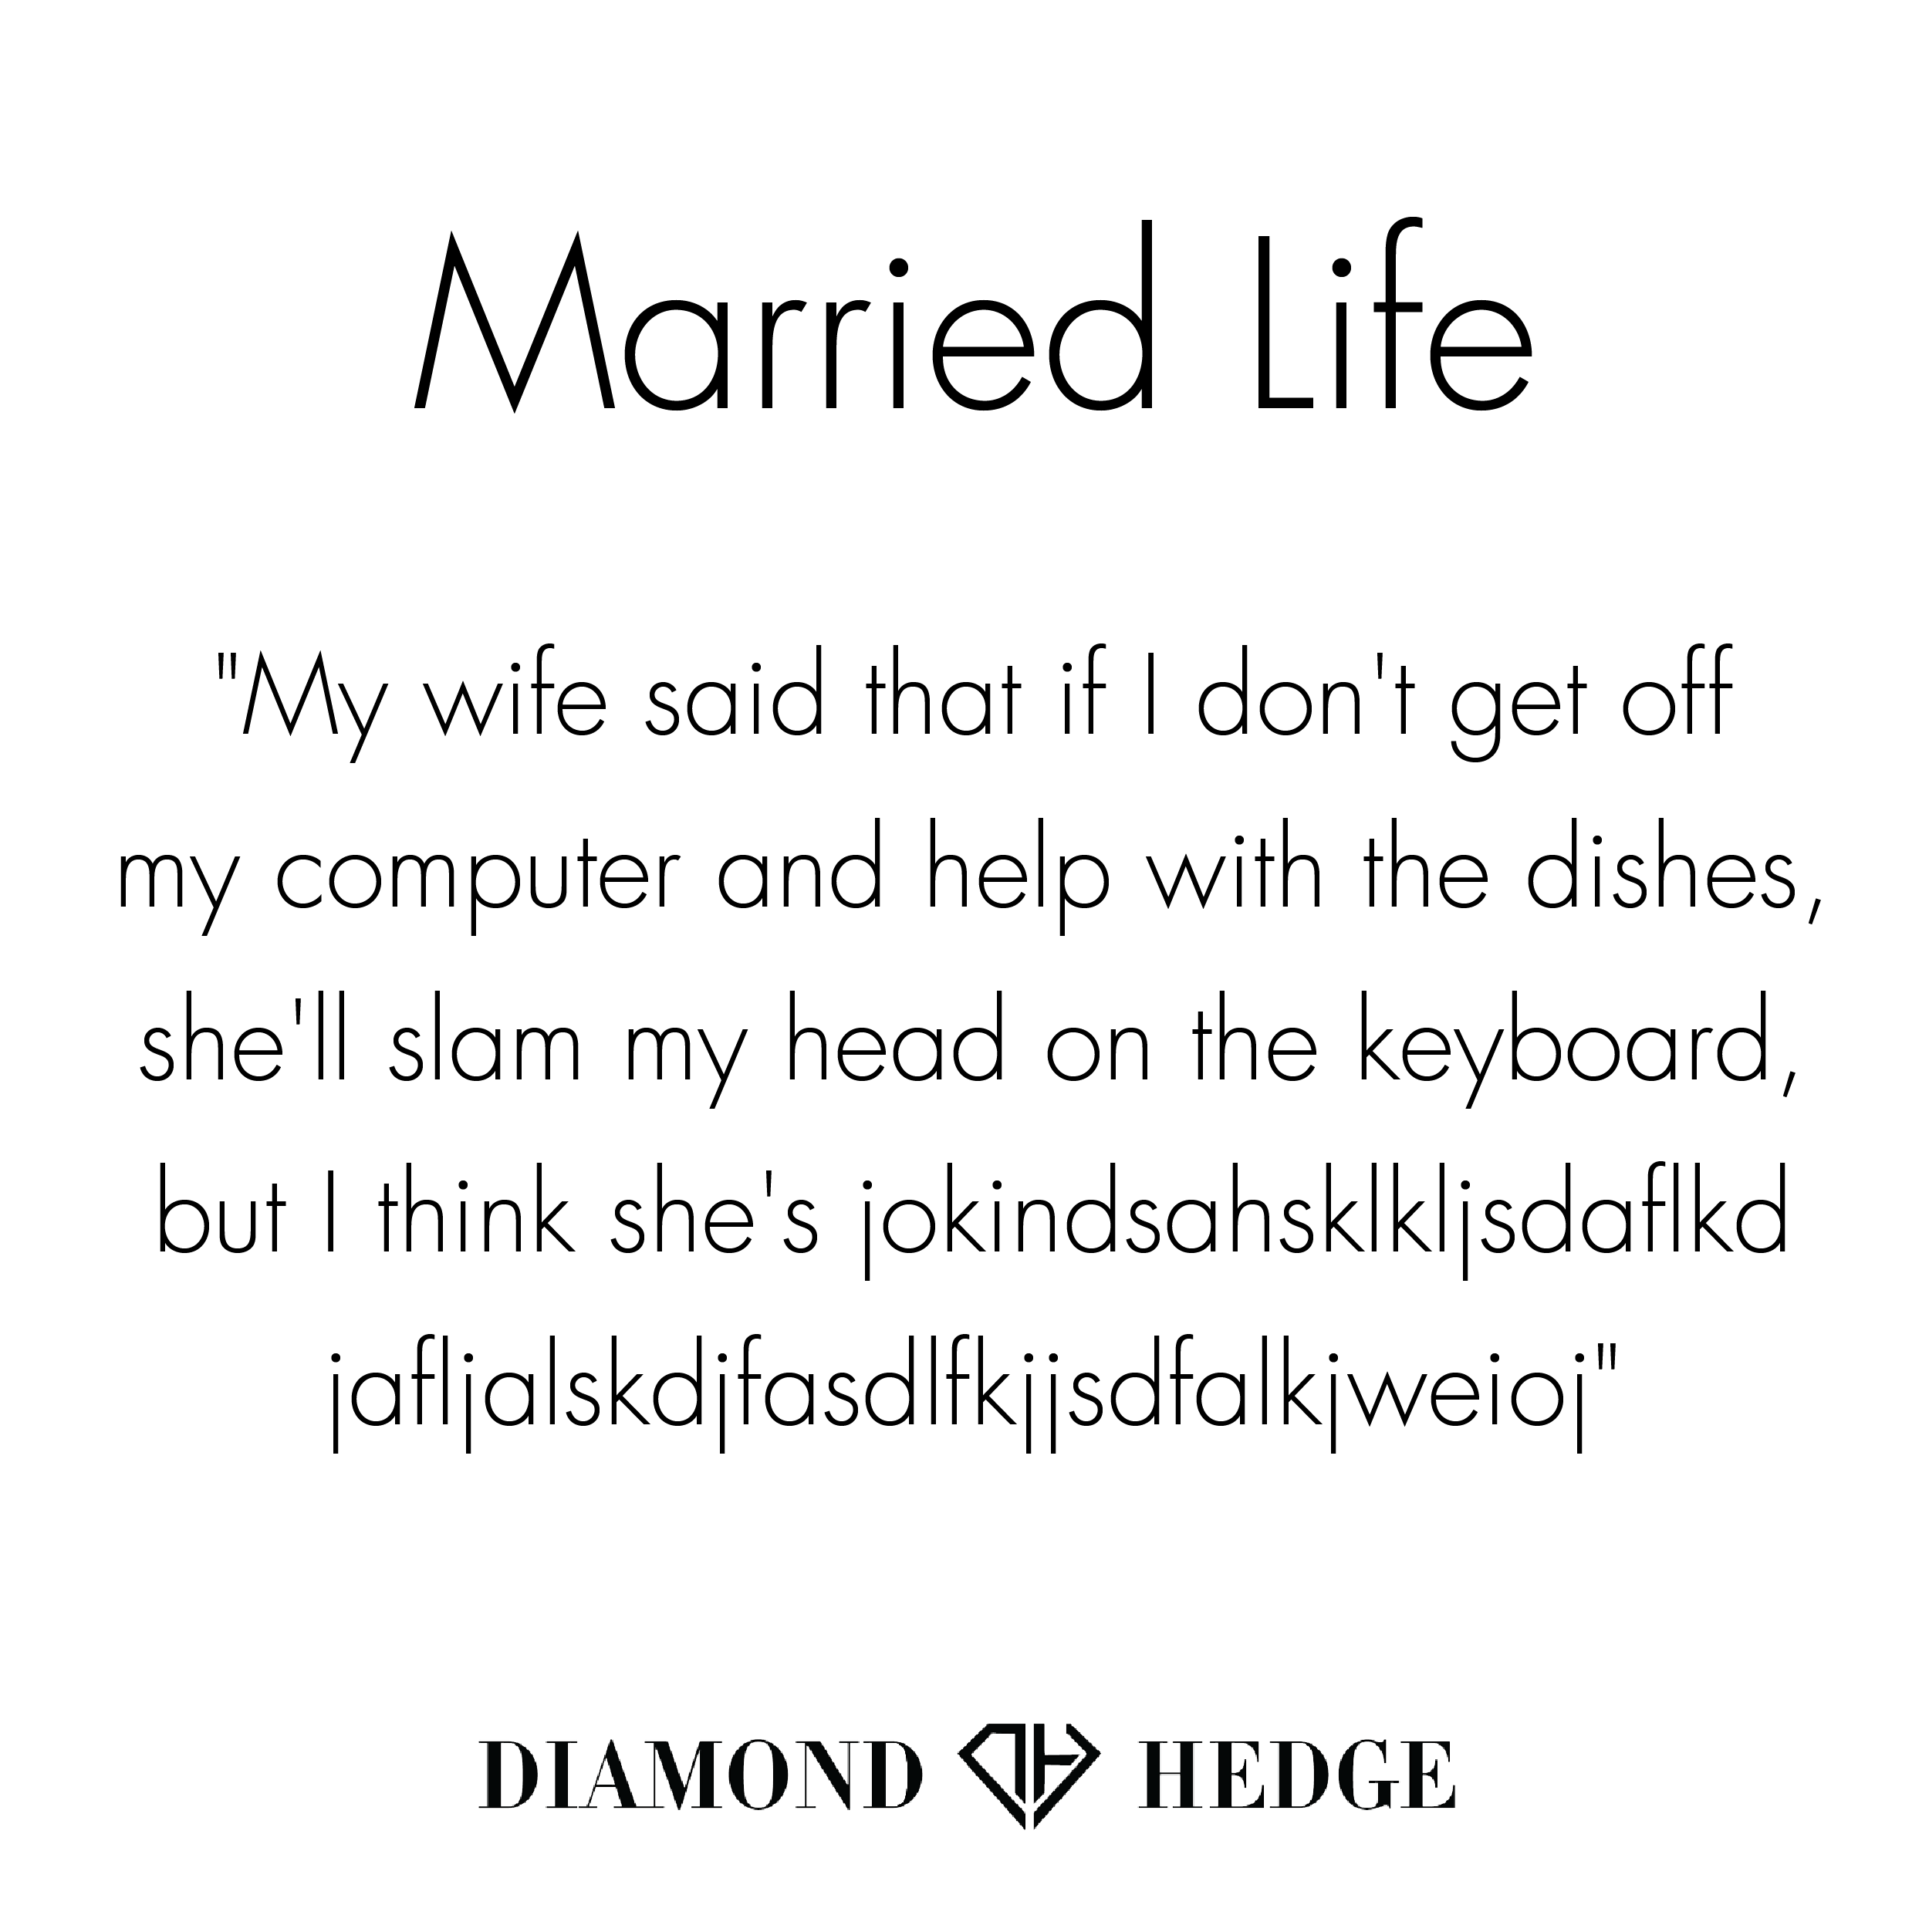 Diamond Search Engine Diamond Comparison Using Augmented Reality In 2020 Funny Quotes Marriage Quotes Wedding Humor